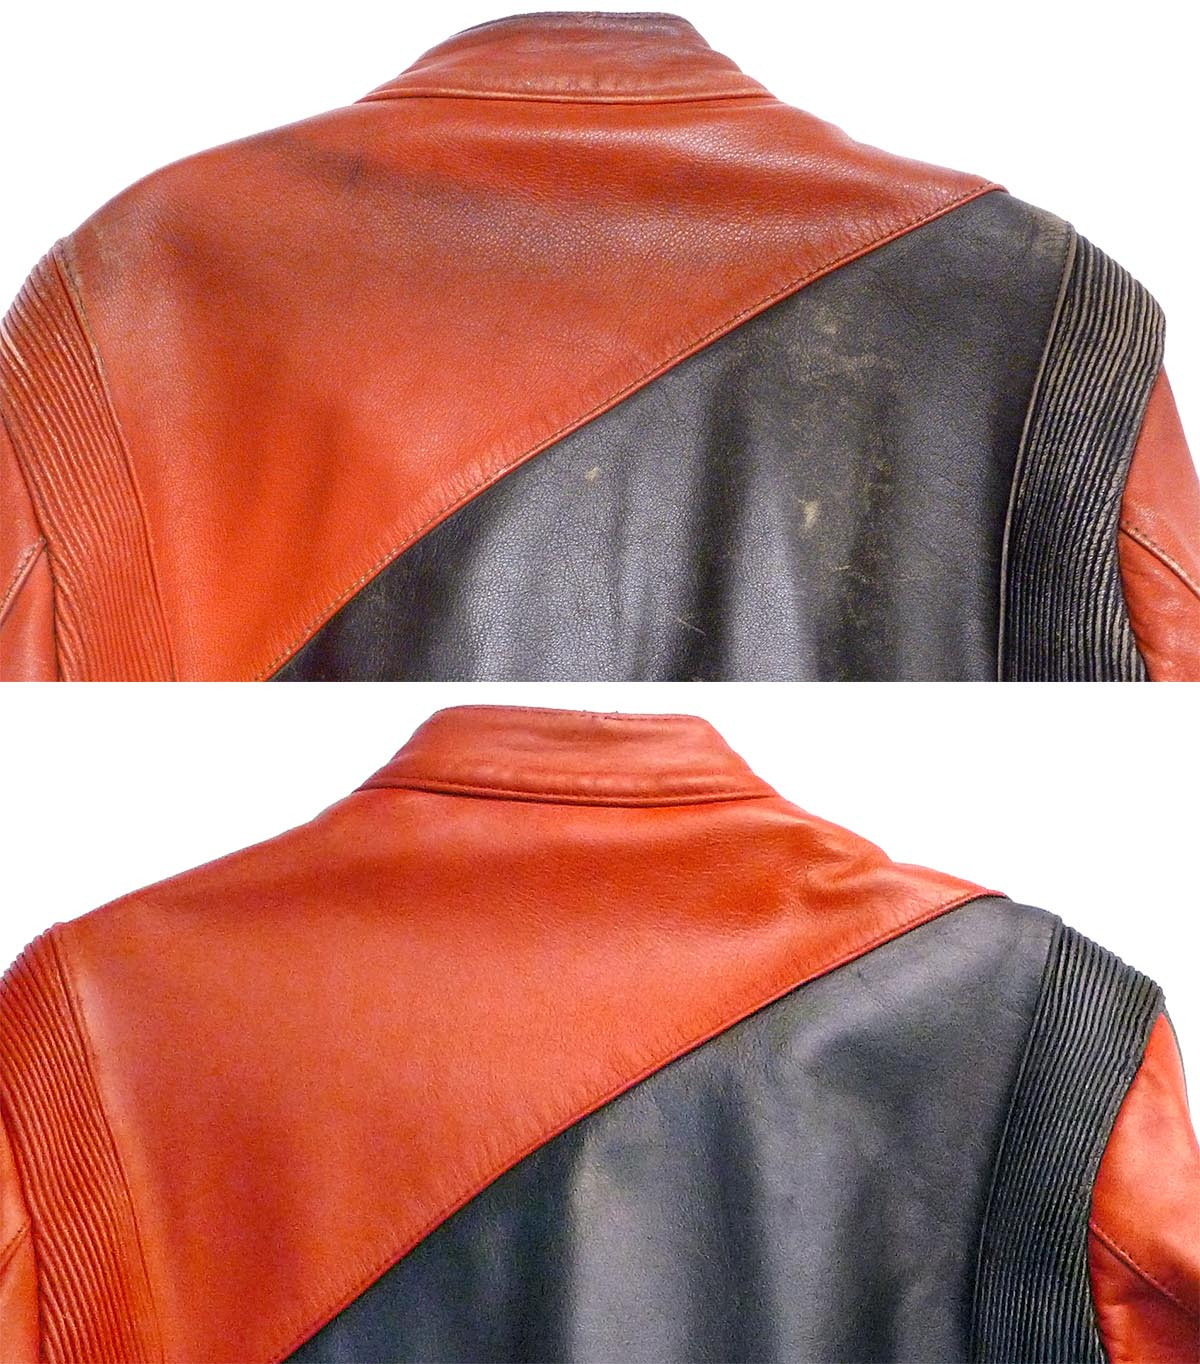 We were able to clean and refinish the motocross jacket to bring it back to life